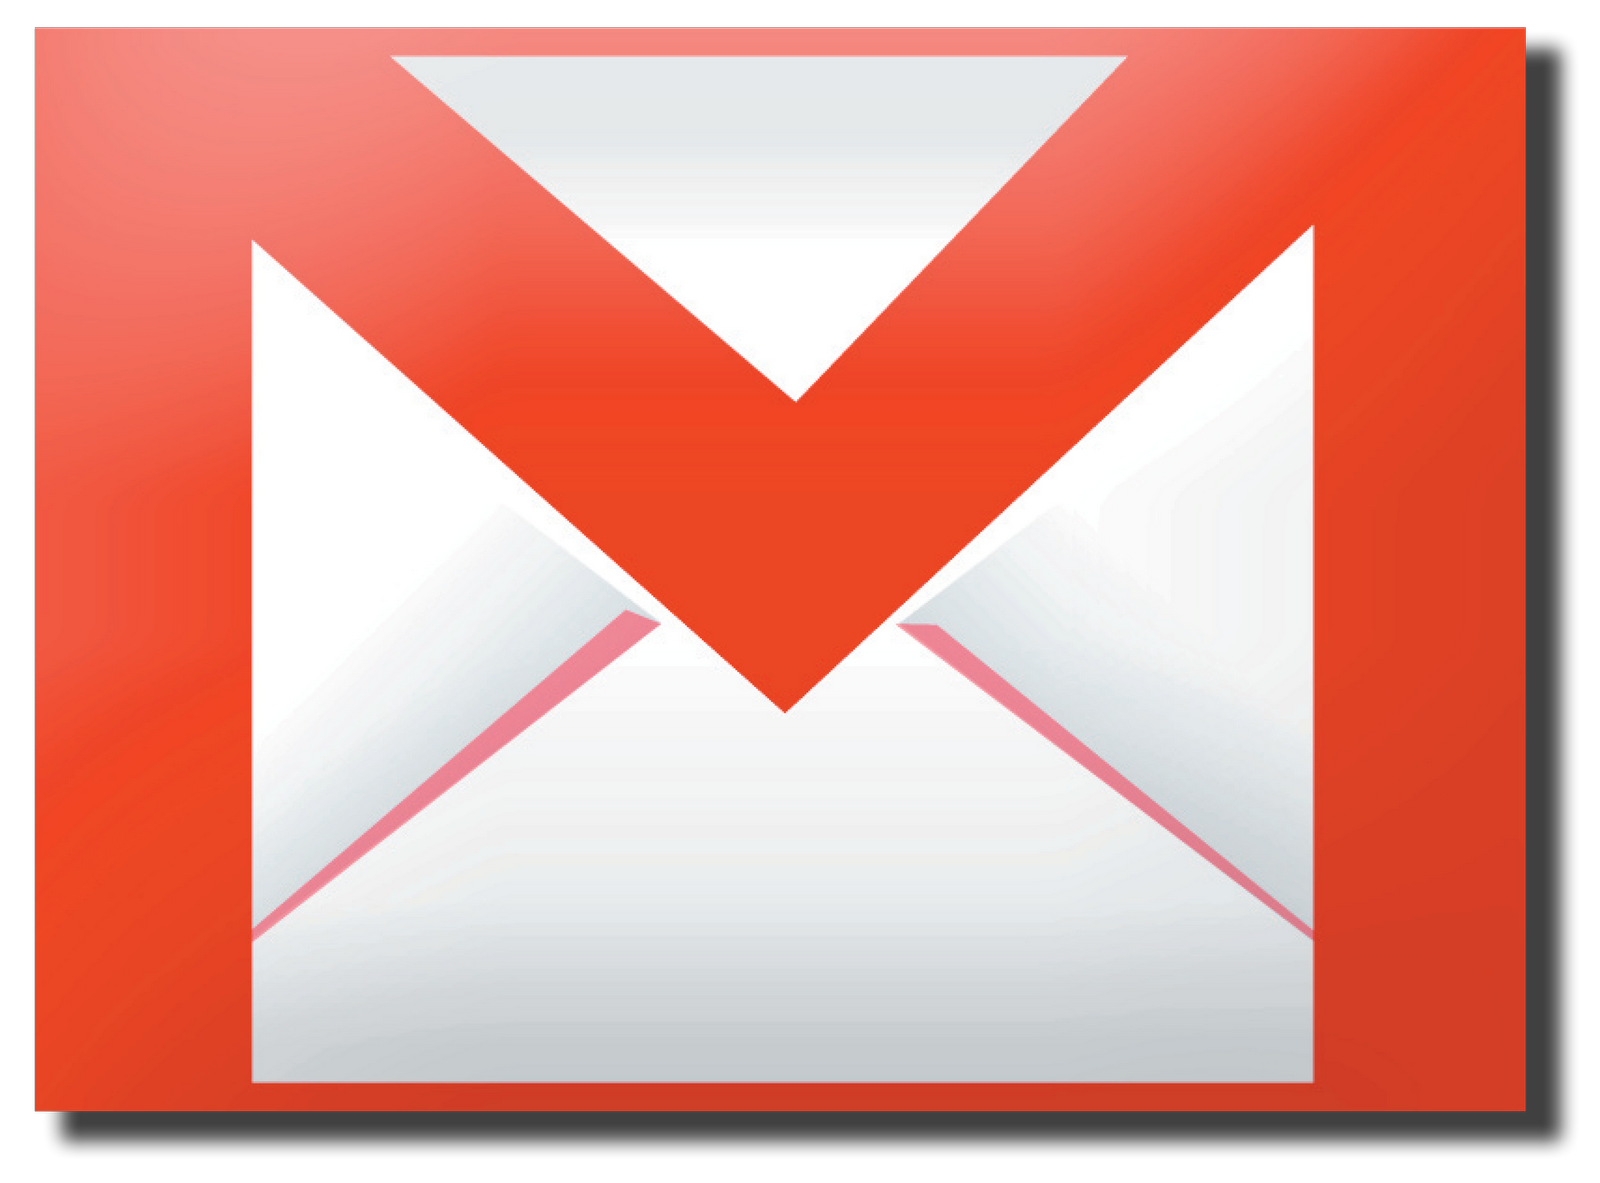 Gmail Becomes World's First Android App With 1 Billion Installs